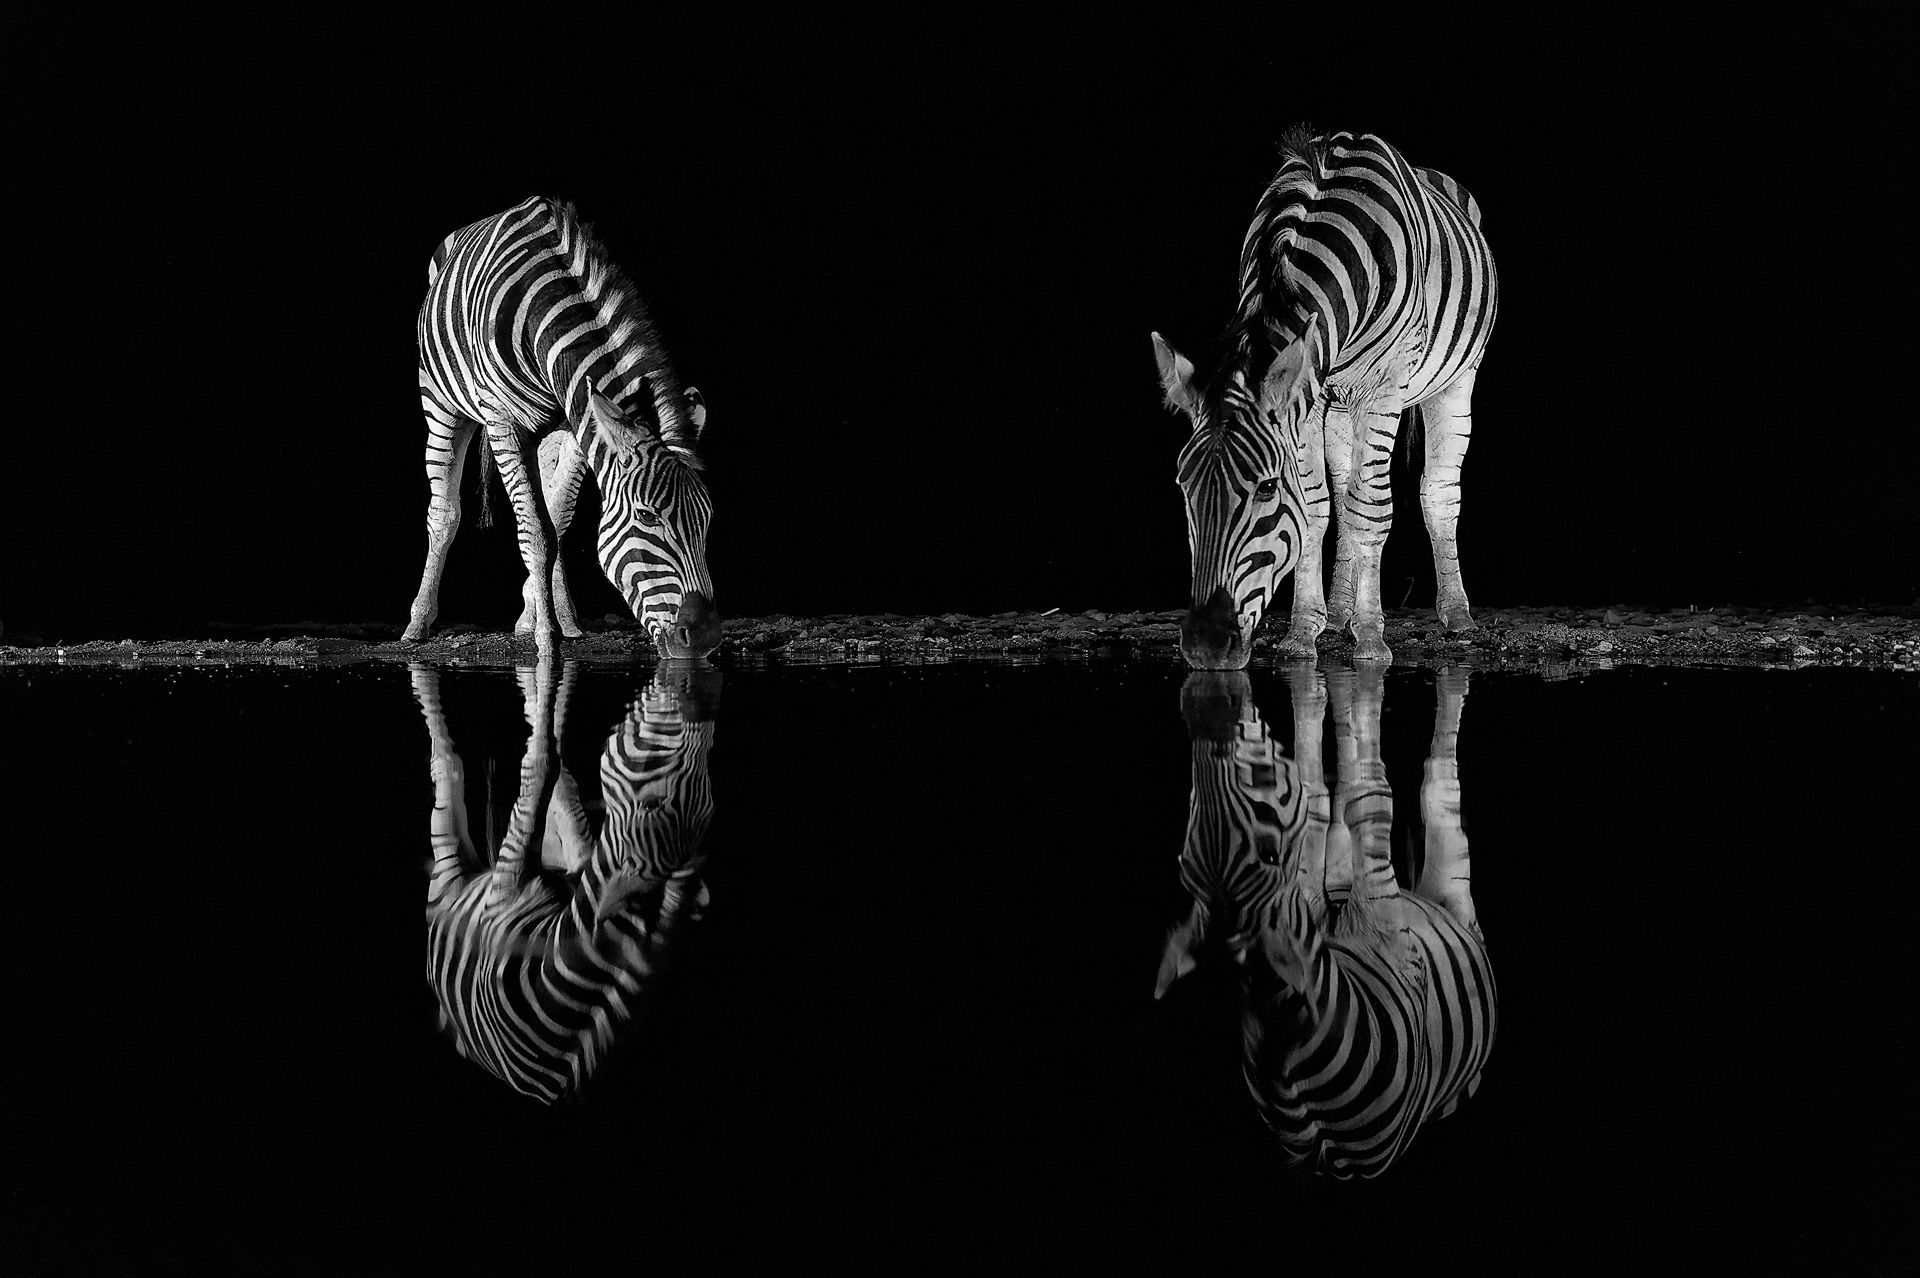 Zebras in the night